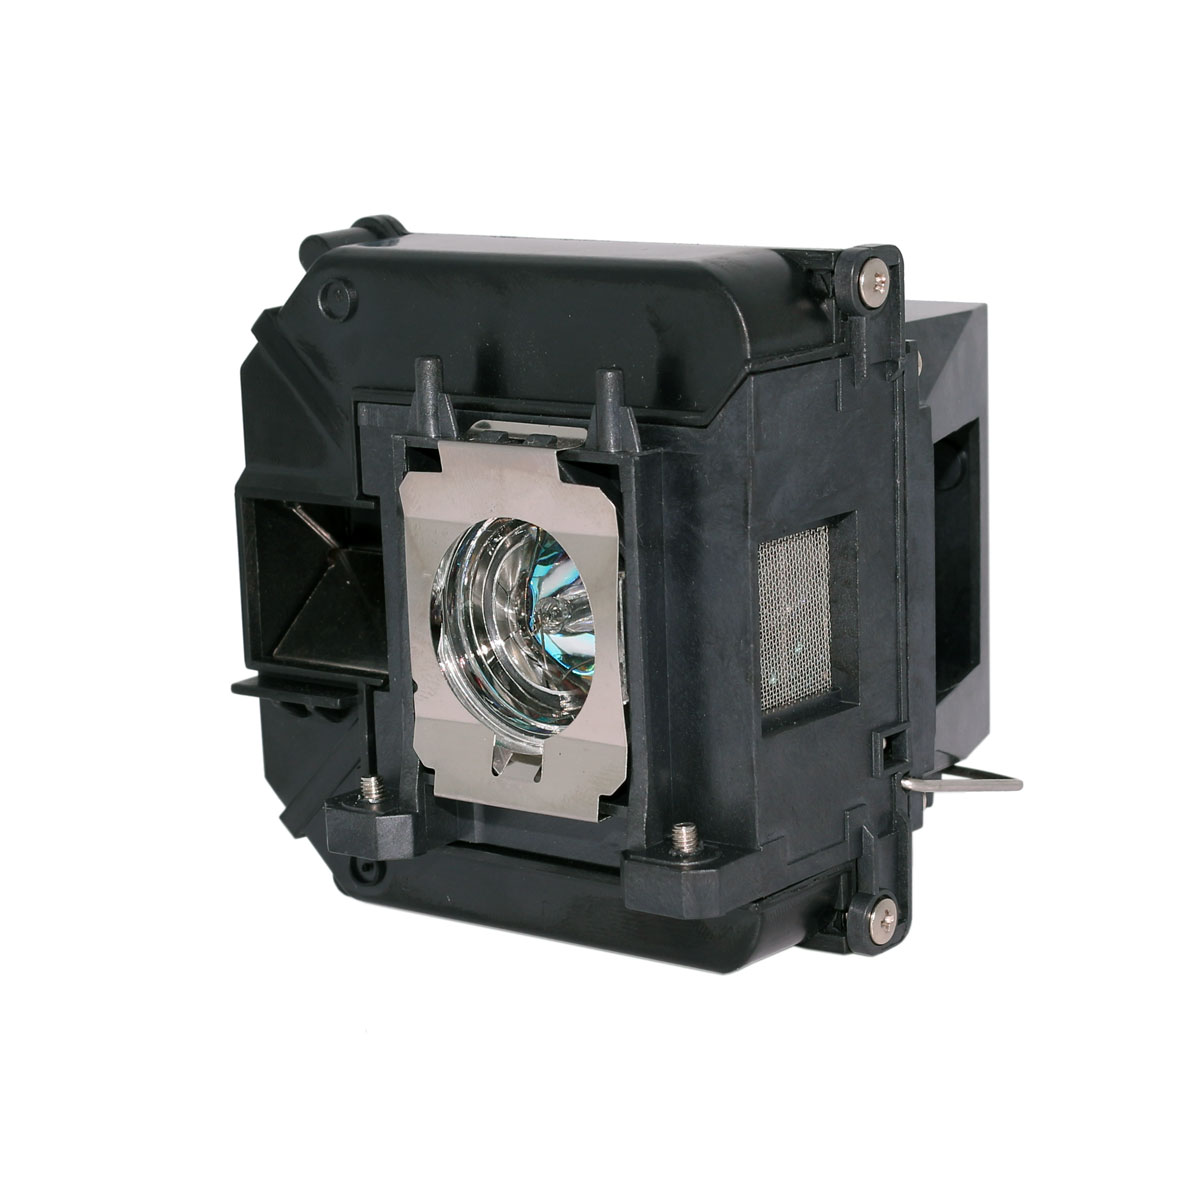 Lutema Platinum for Epson H388C Projector Lamp with Housing - image 5 of 5